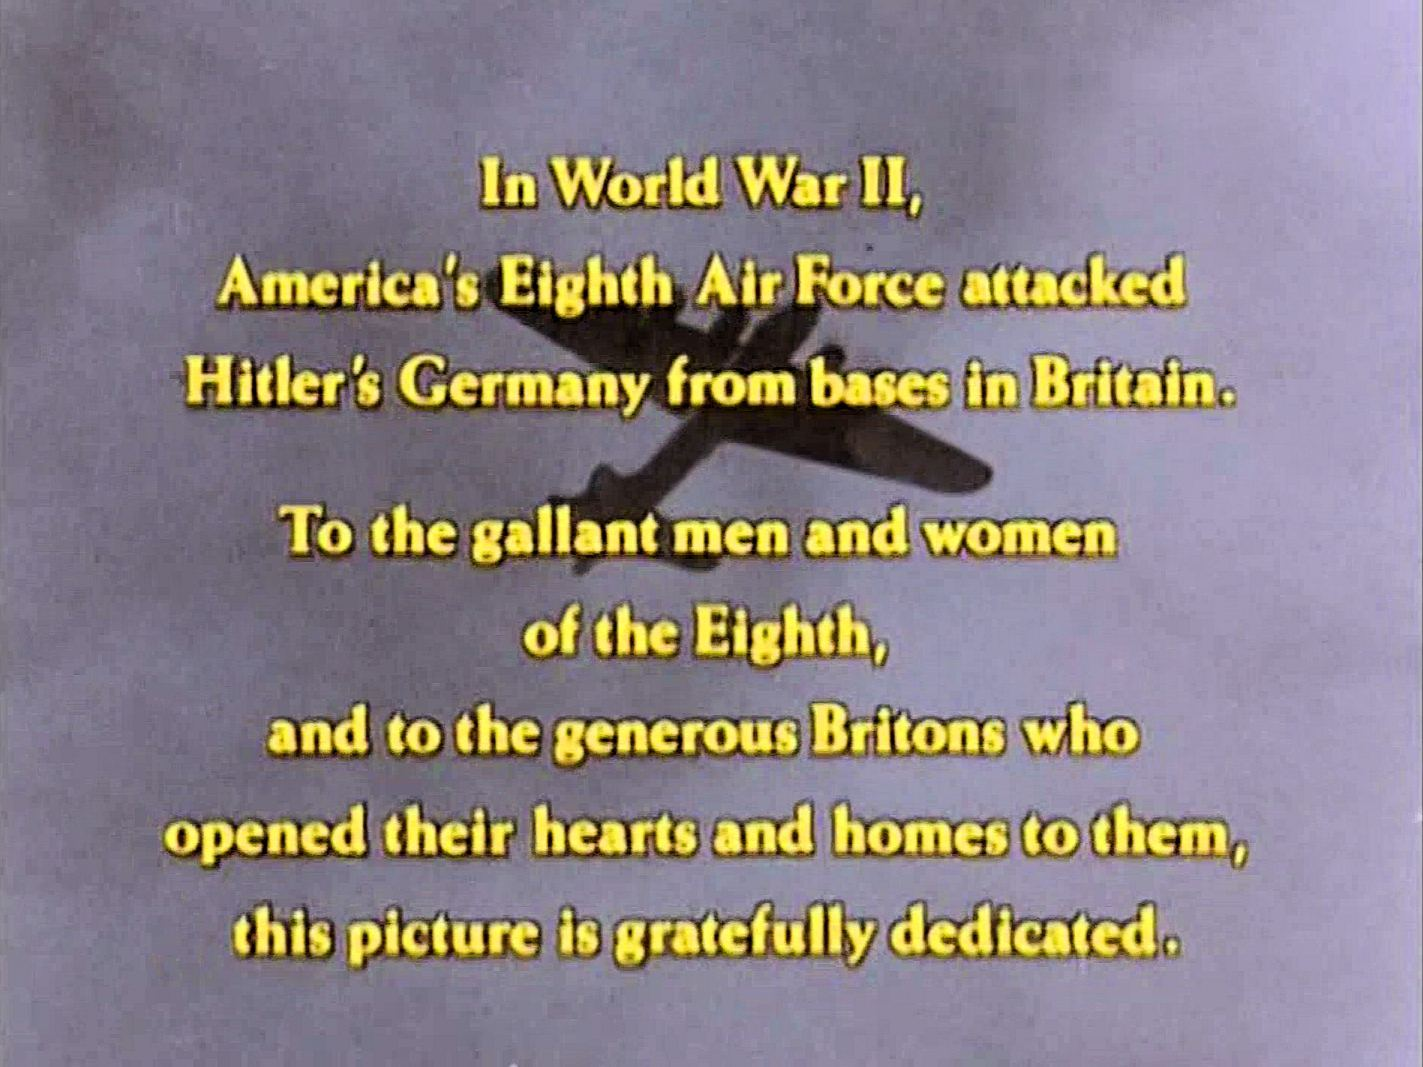 Main title from Reunion at Fairborough (1985) (1).  In World War II America's Eighth Air Force attacked Hitler's Germany from bases in Britain.  To the gallant men and women of the Eighth and to the generous Britons who opened their hearts and homes to them, this picture is gratefully dedicated